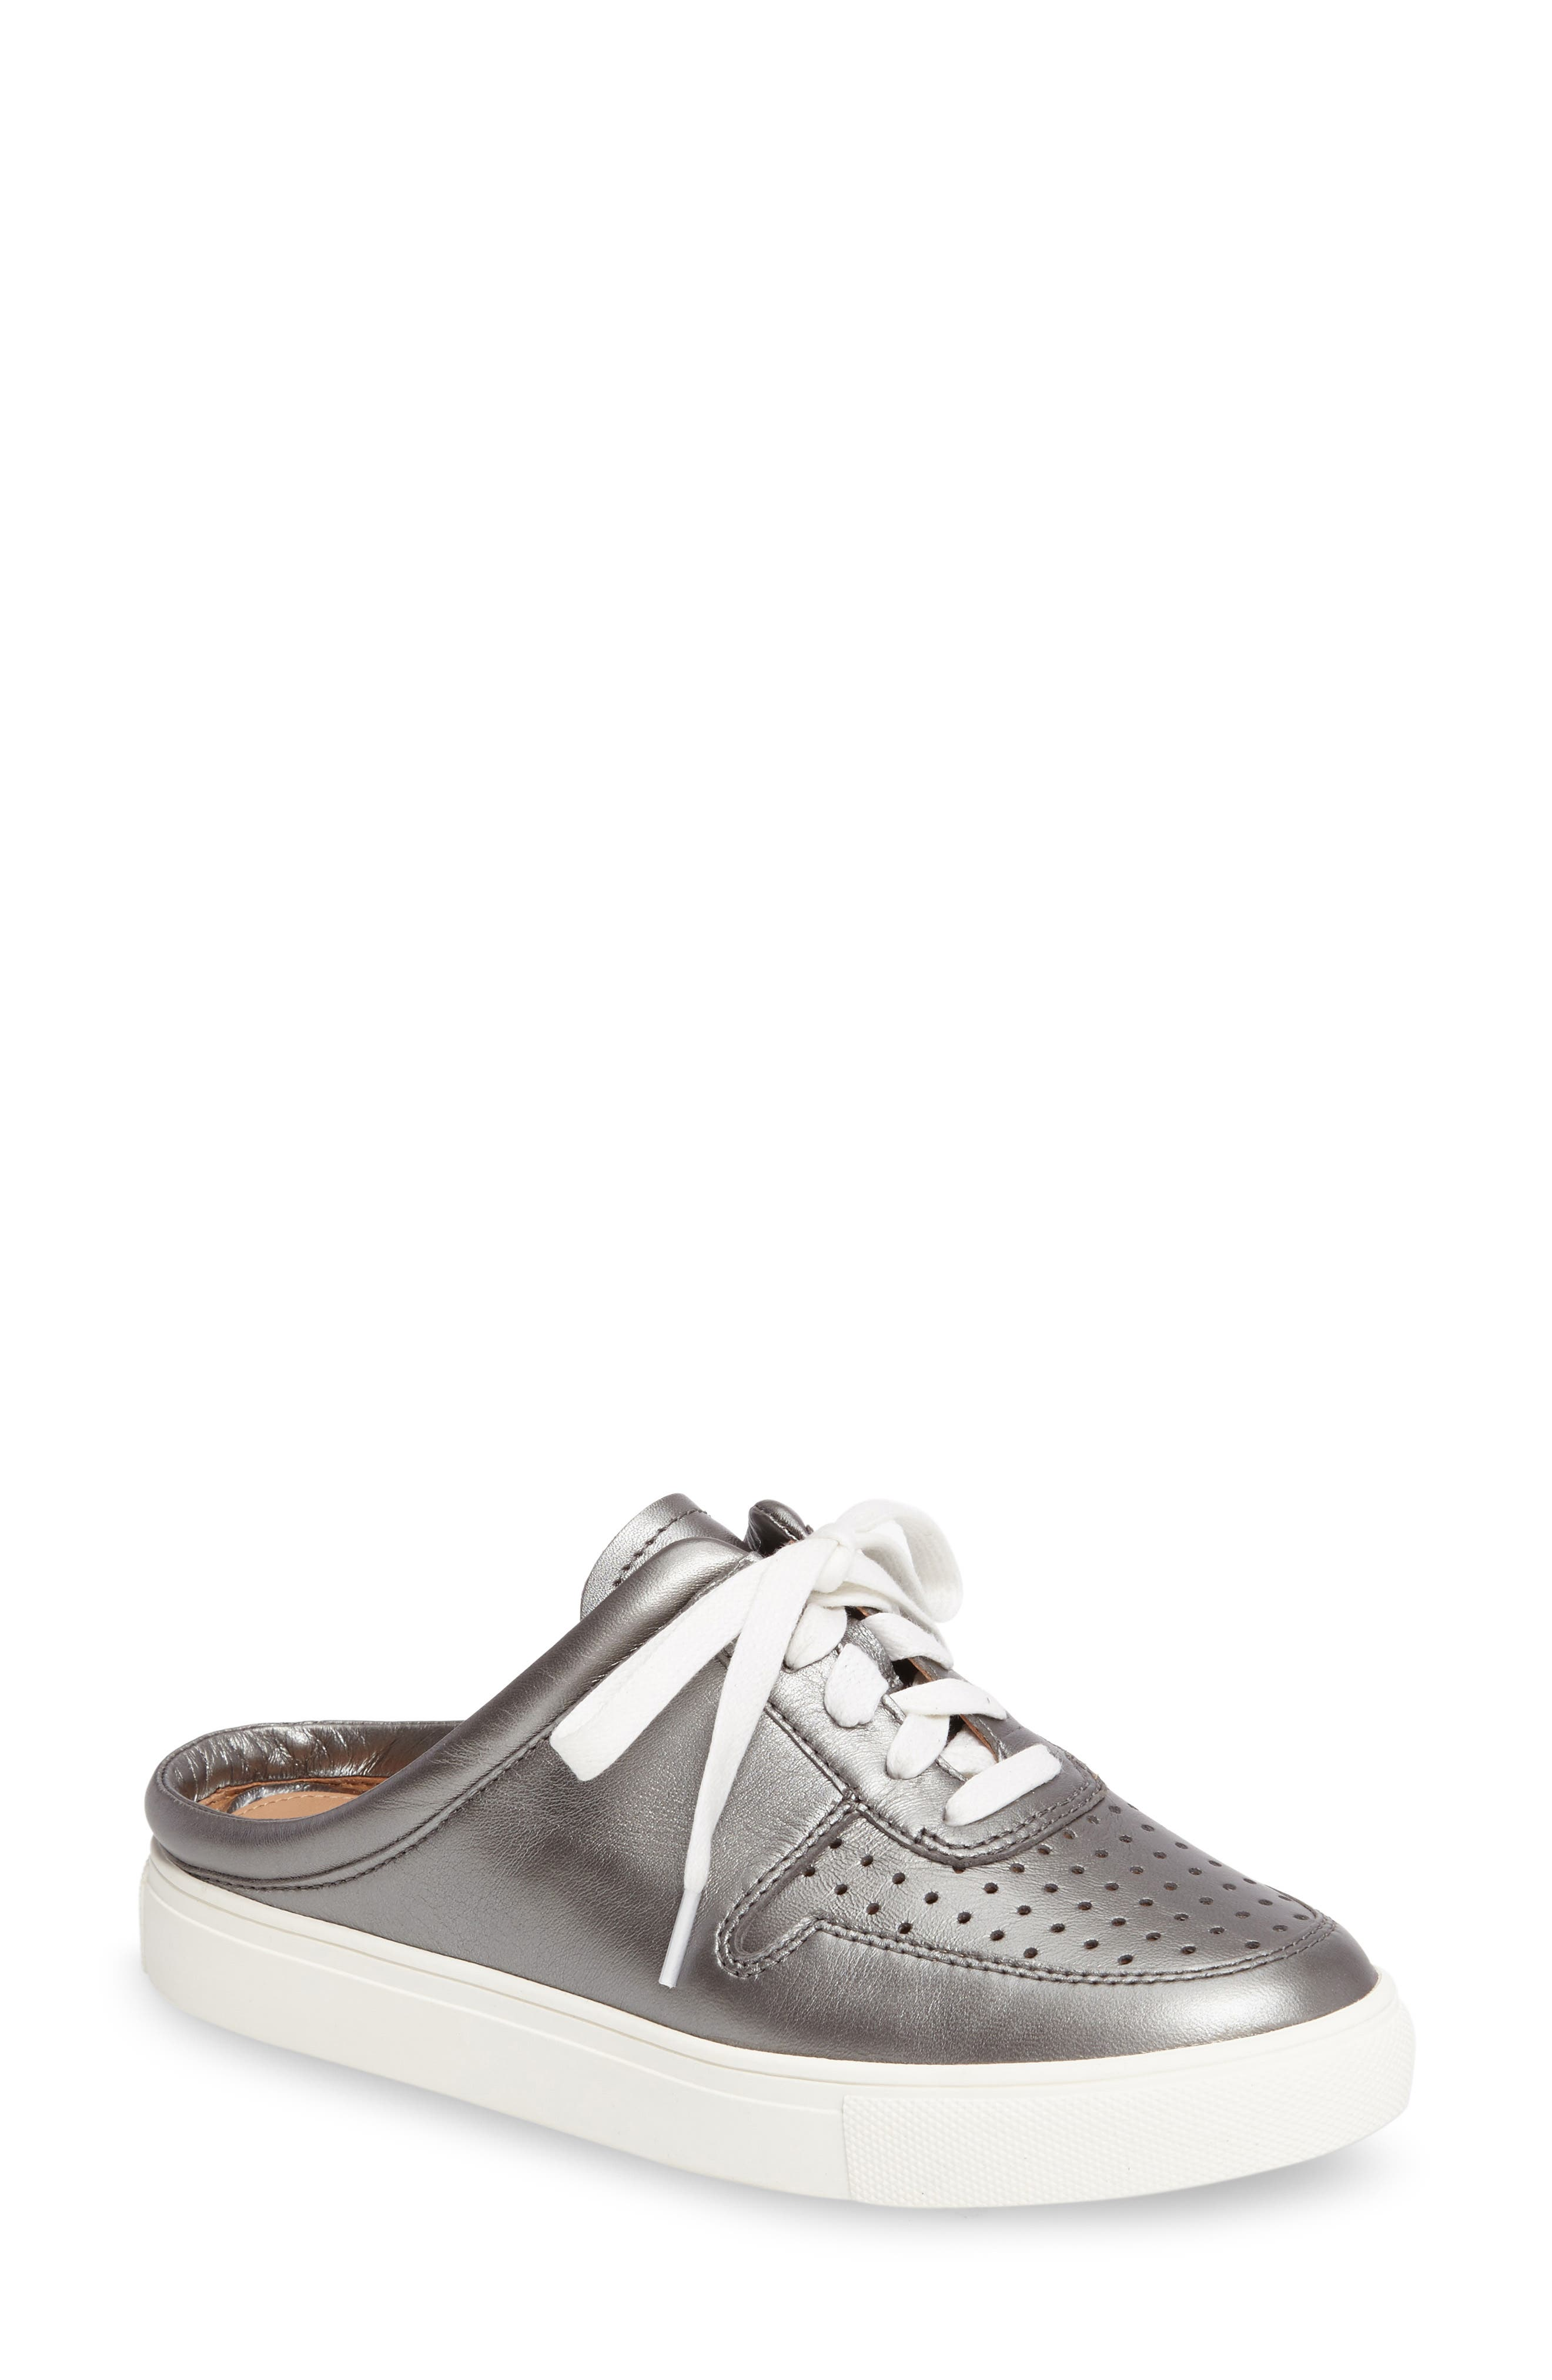 Kacy Perforated Slide Sneaker,                         Main,                         color, 040